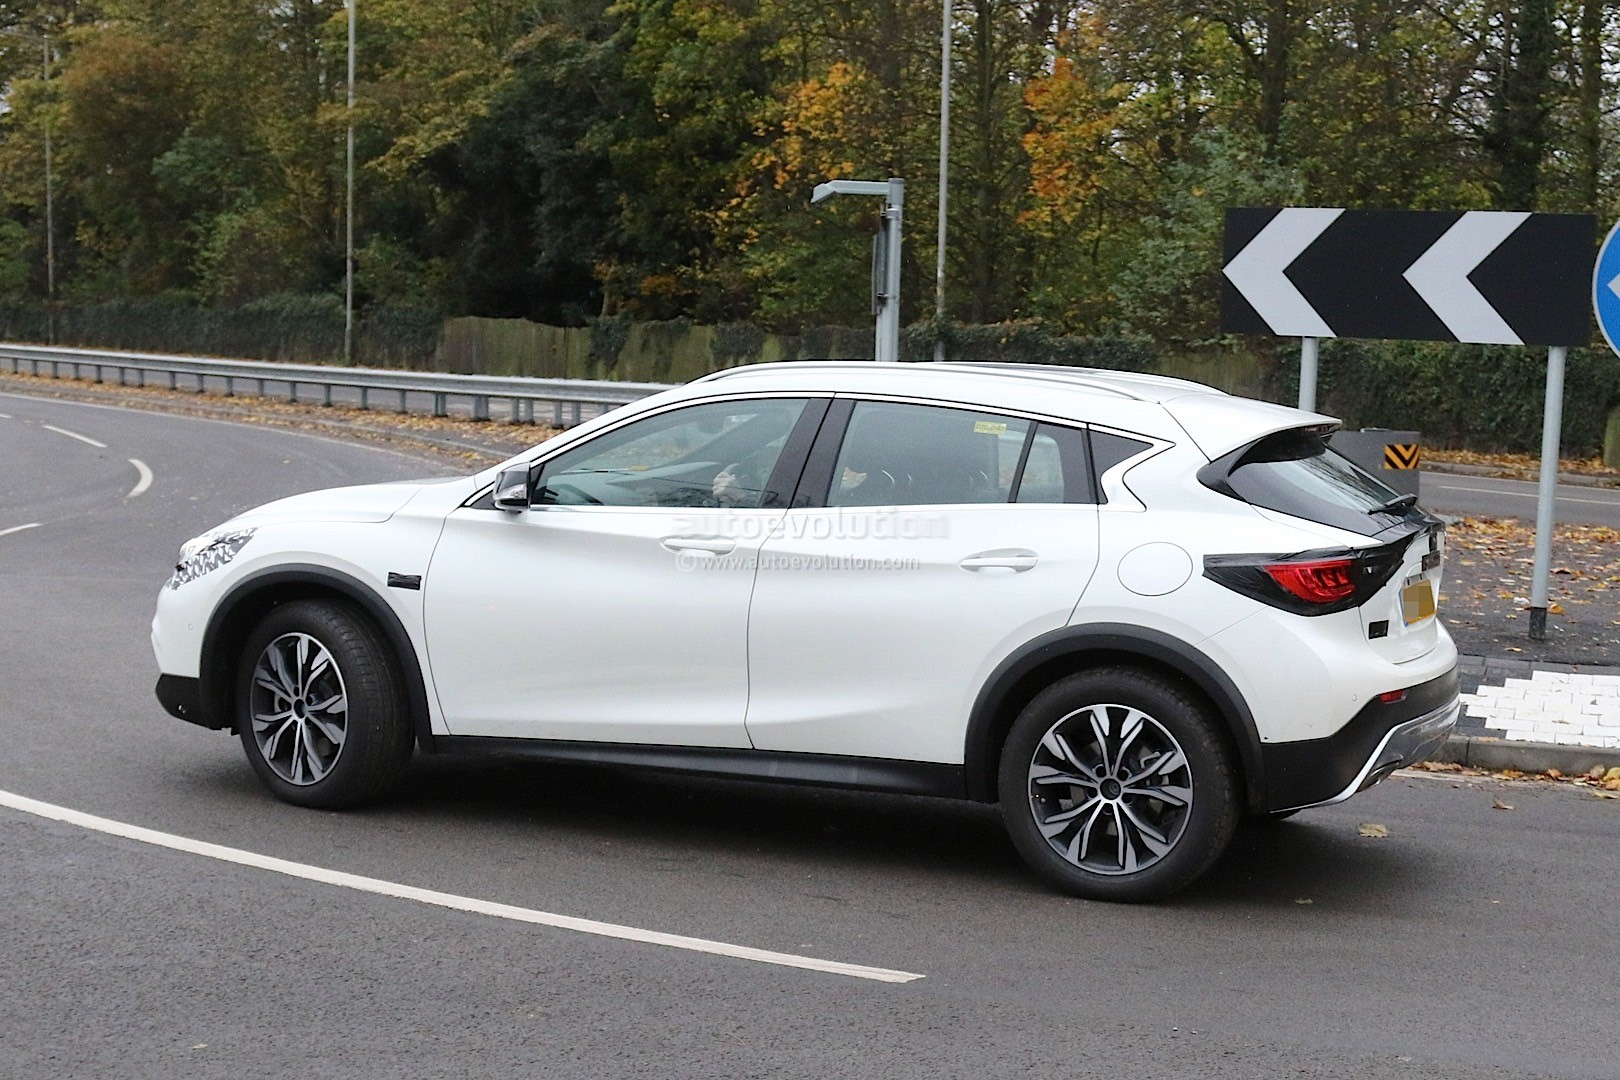 2017 infiniti qx30 crossover spied with virtually no camouflage ahead of l a launch autoevolution. Black Bedroom Furniture Sets. Home Design Ideas